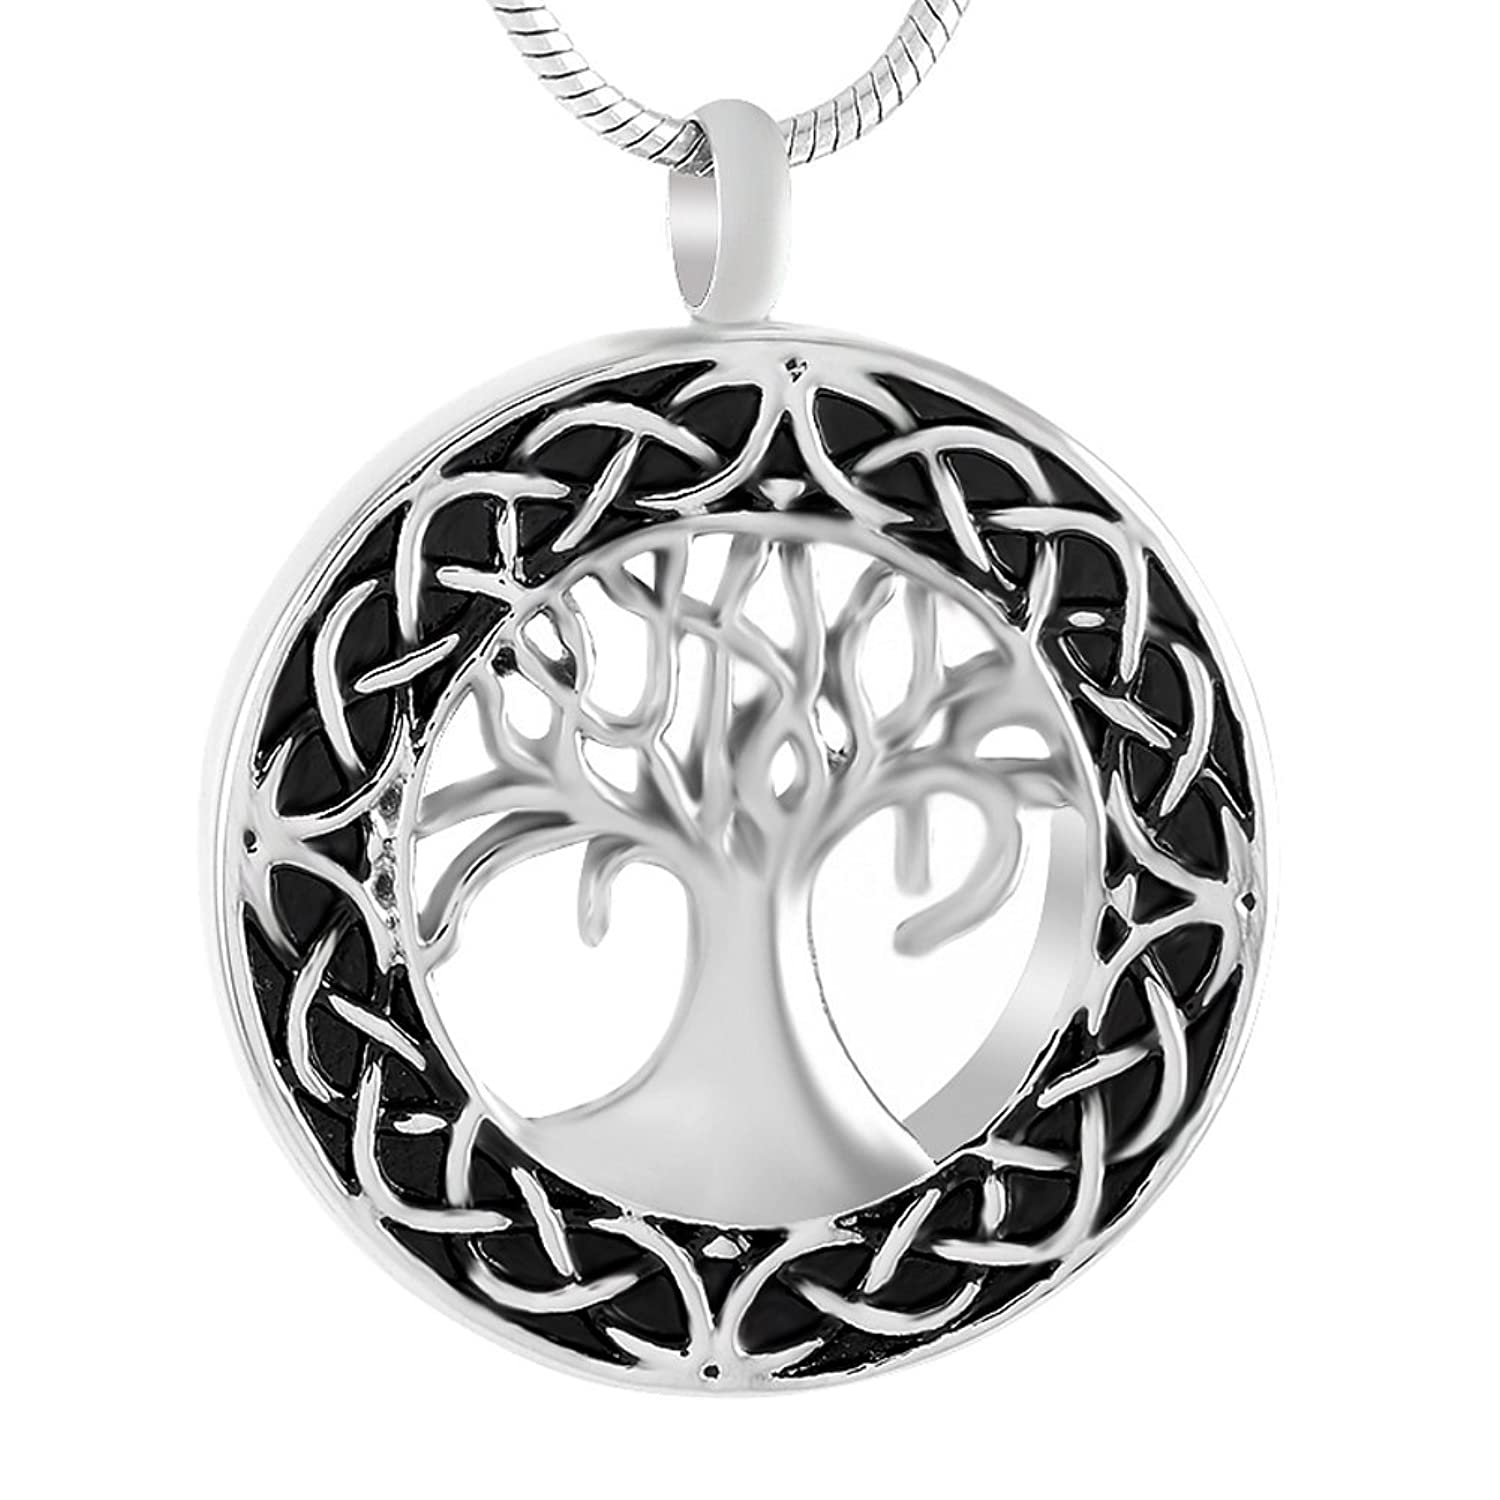 Amazon celtic tree of life urn necklace cremation jewelry amazon celtic tree of life urn necklace cremation jewelry memorial keepsake pendant funnel kit included jewelry solutioingenieria Image collections